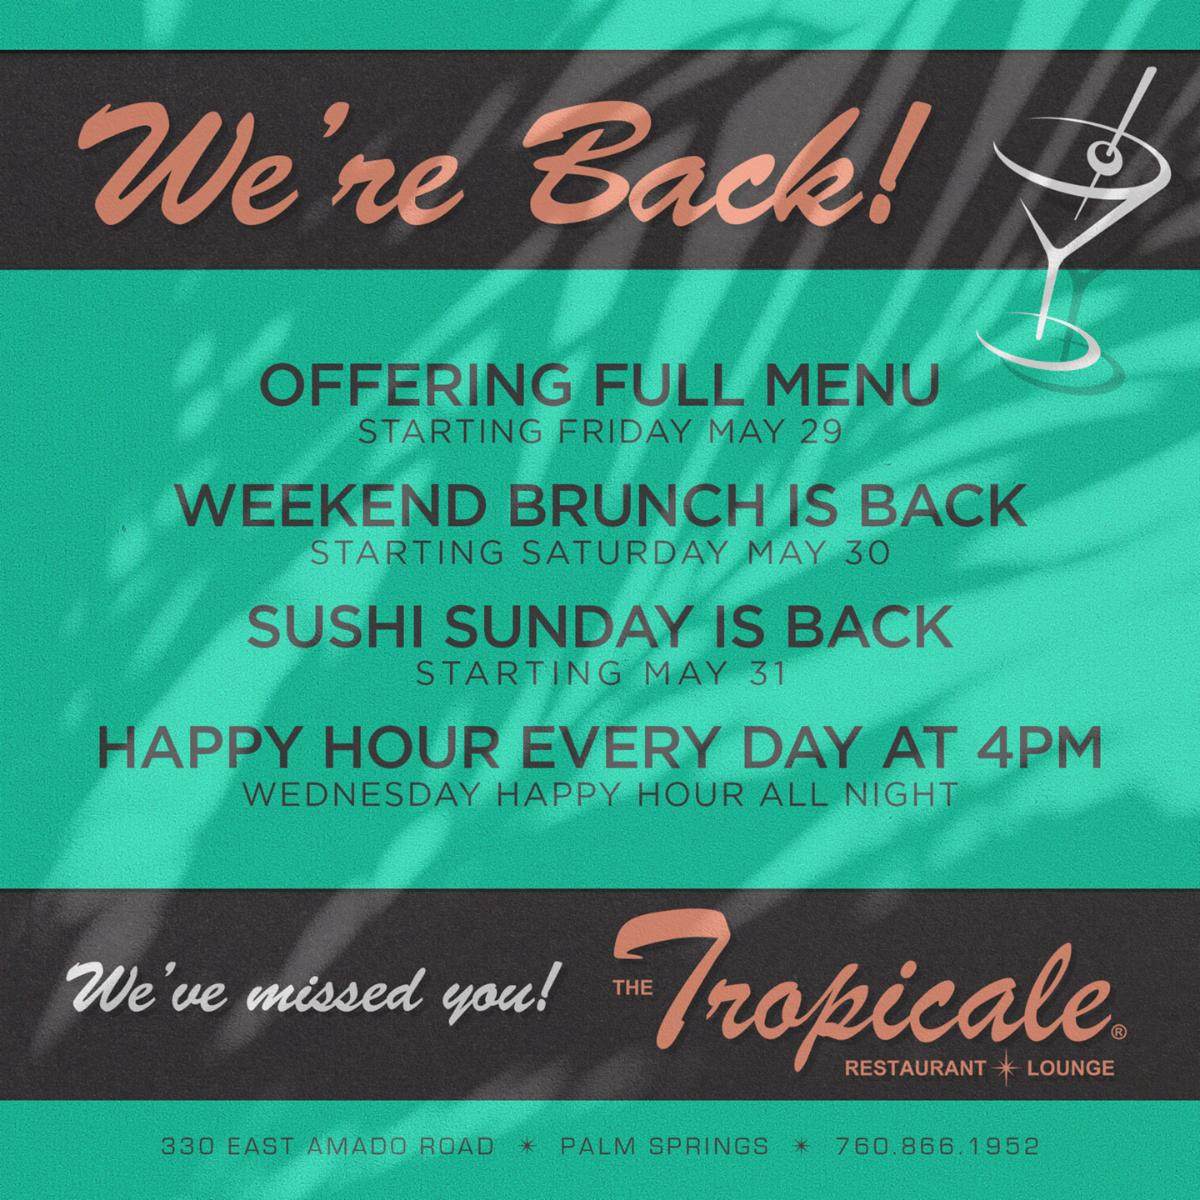 We're Back!!! Offering Our Full Menu at The Tropicale in Palm Springs